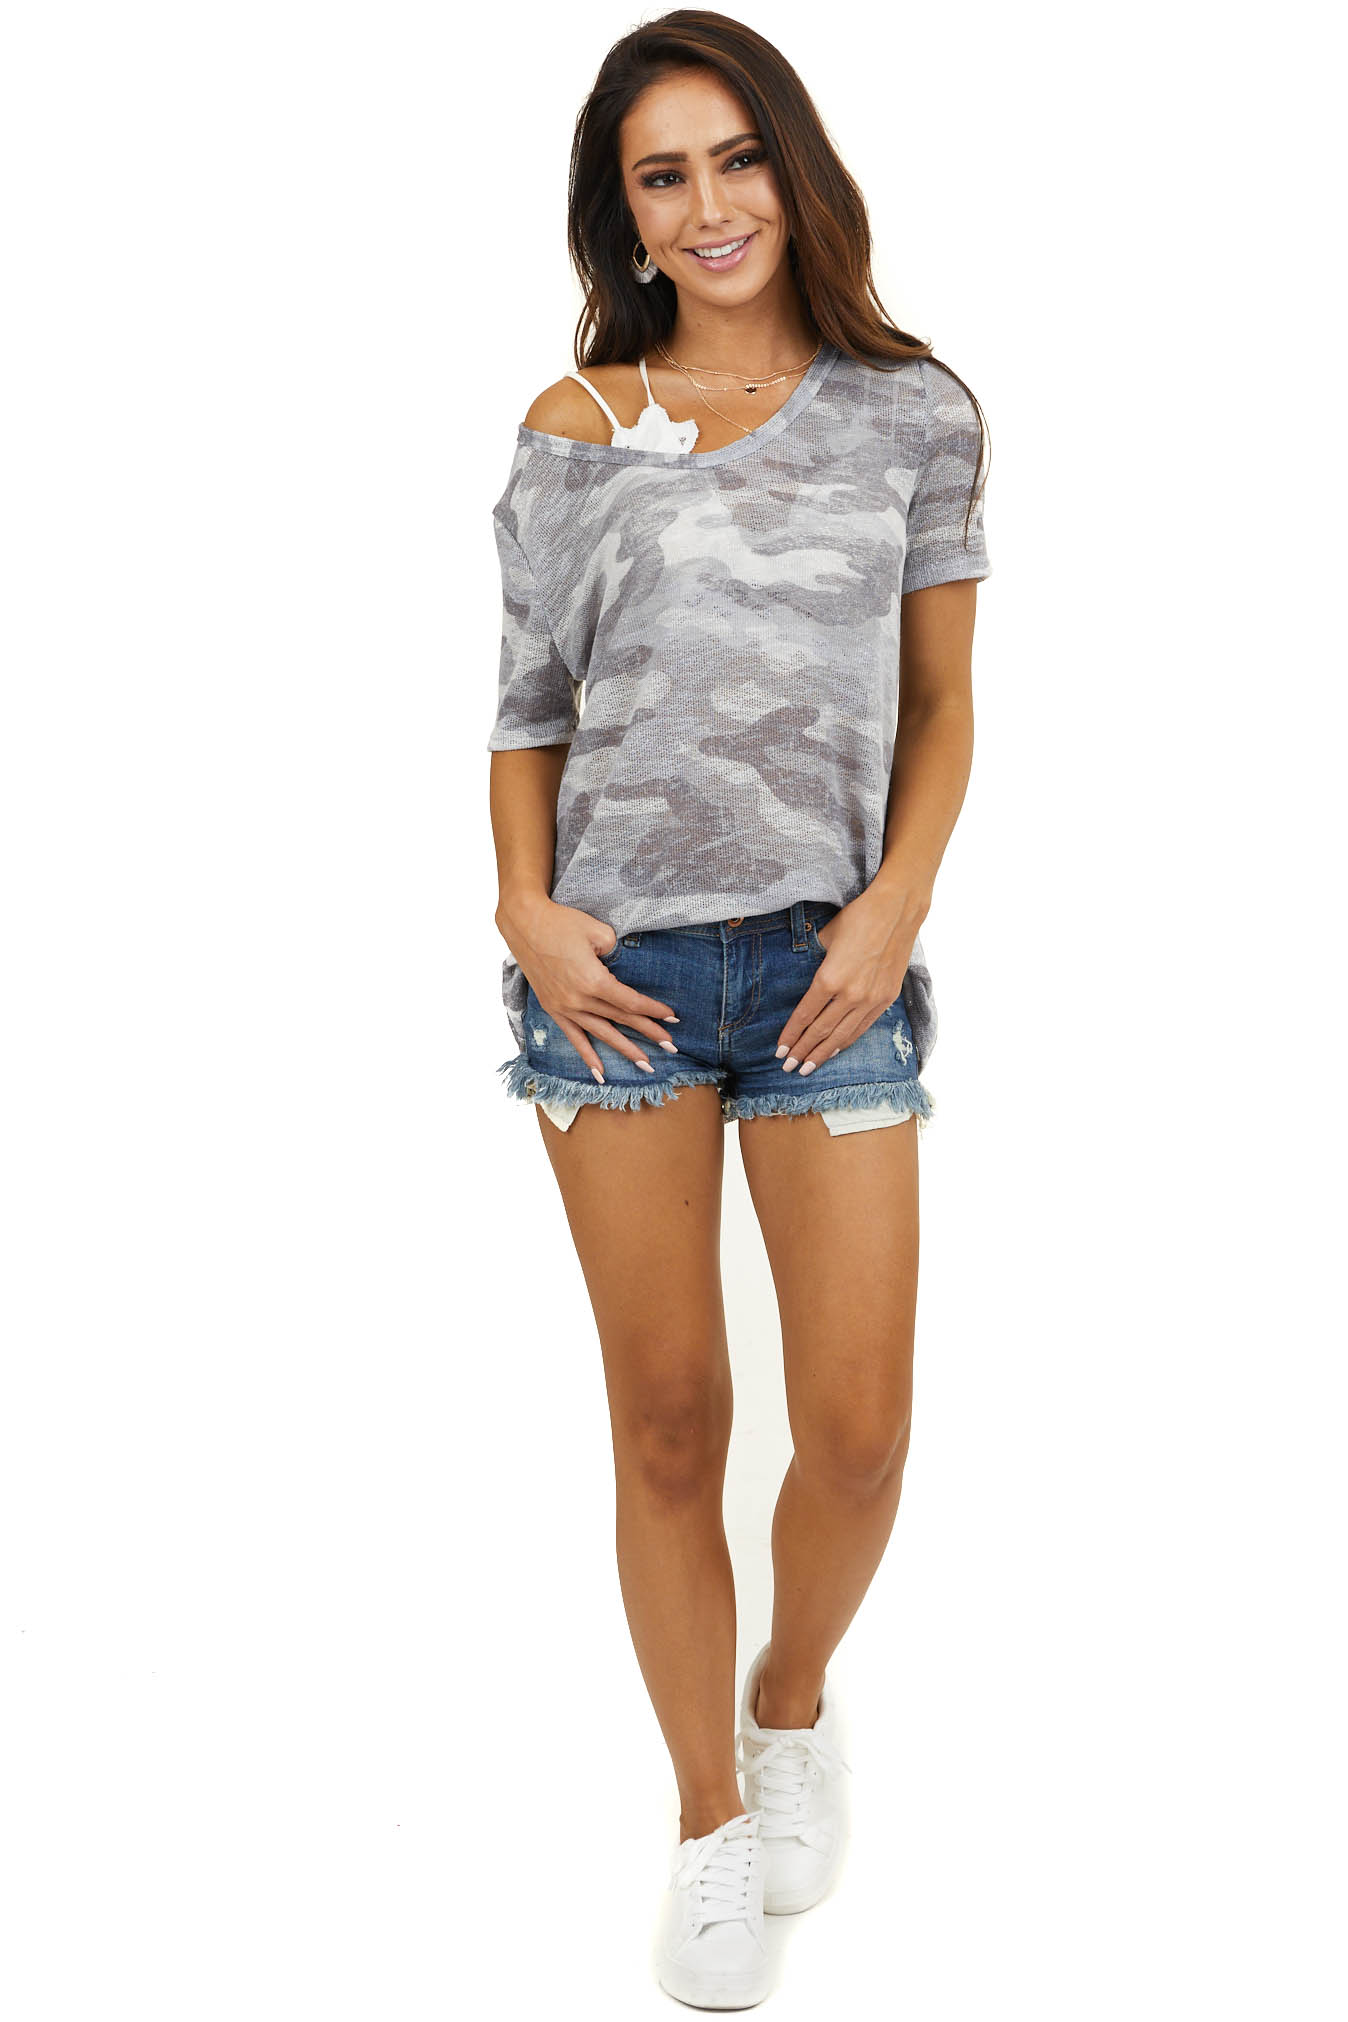 Stormy and Slate Grey Camo Loose Knit Top with Short Sleeves